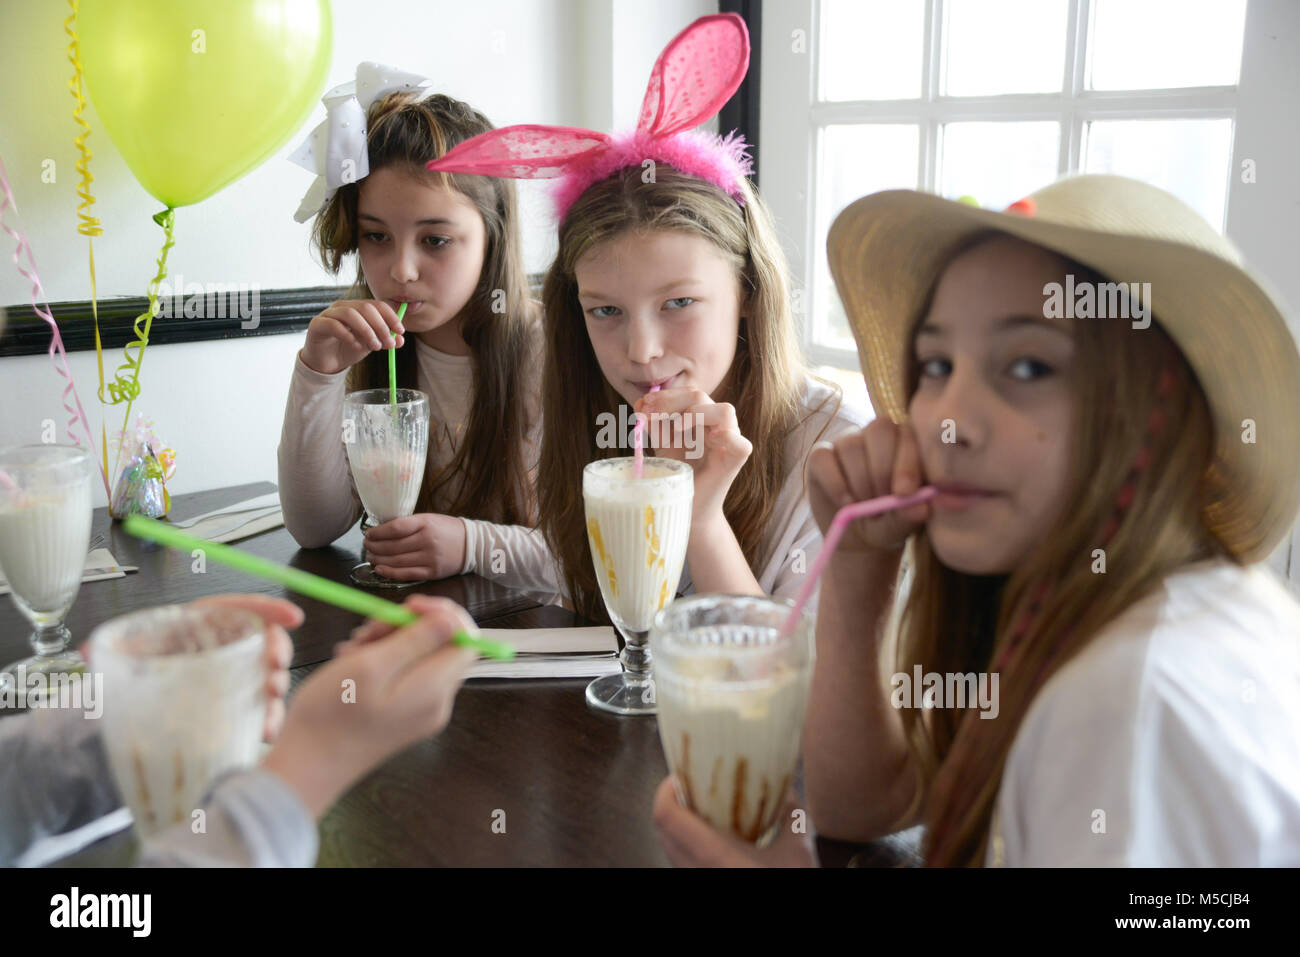 Three young children are sitting at a party table eating fried food and drinking milkshakes- there are balloons - Stock Image